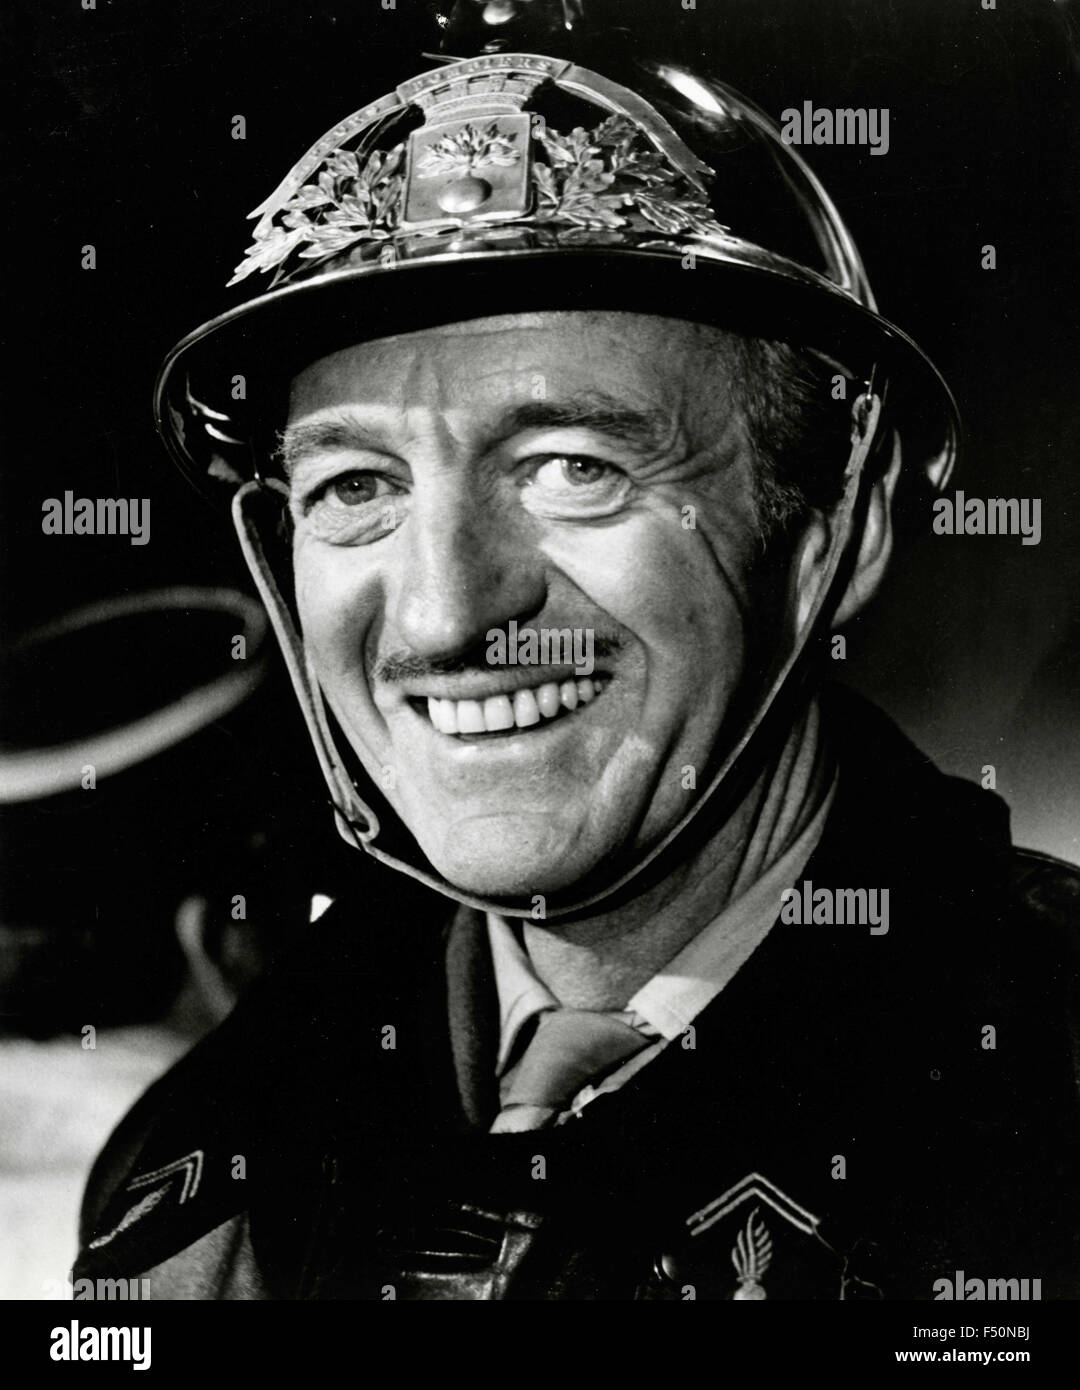 The British actor David Niven in a scene from the film 'The Brain' (Le Cerveau), France - Stock Image